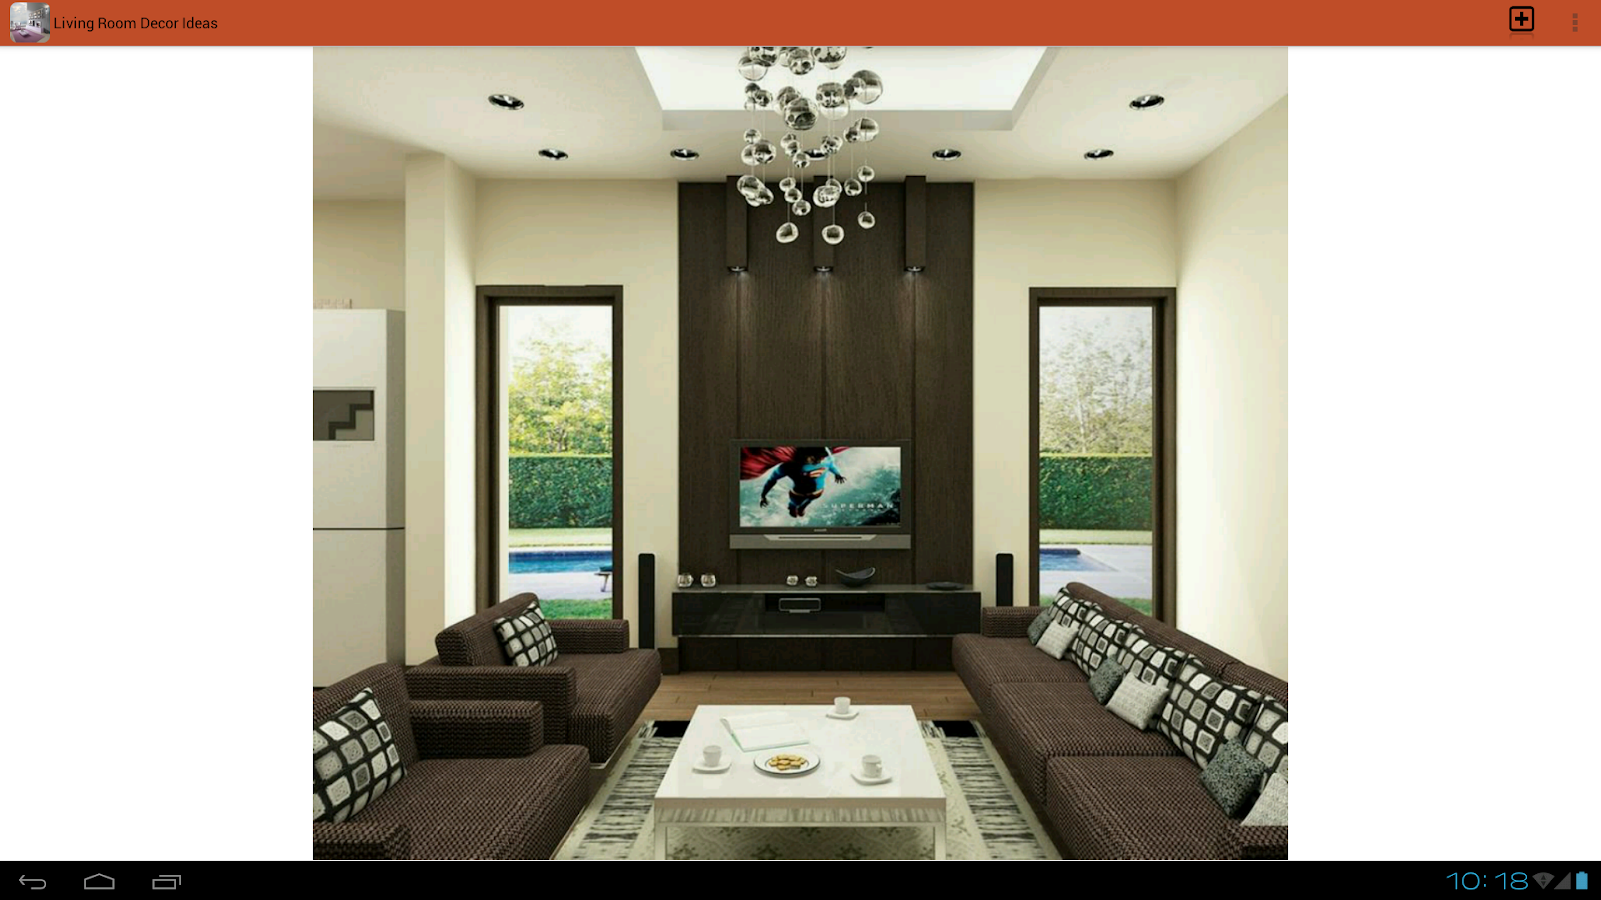 Living Room Decor Ideas Android Apps On Google Play